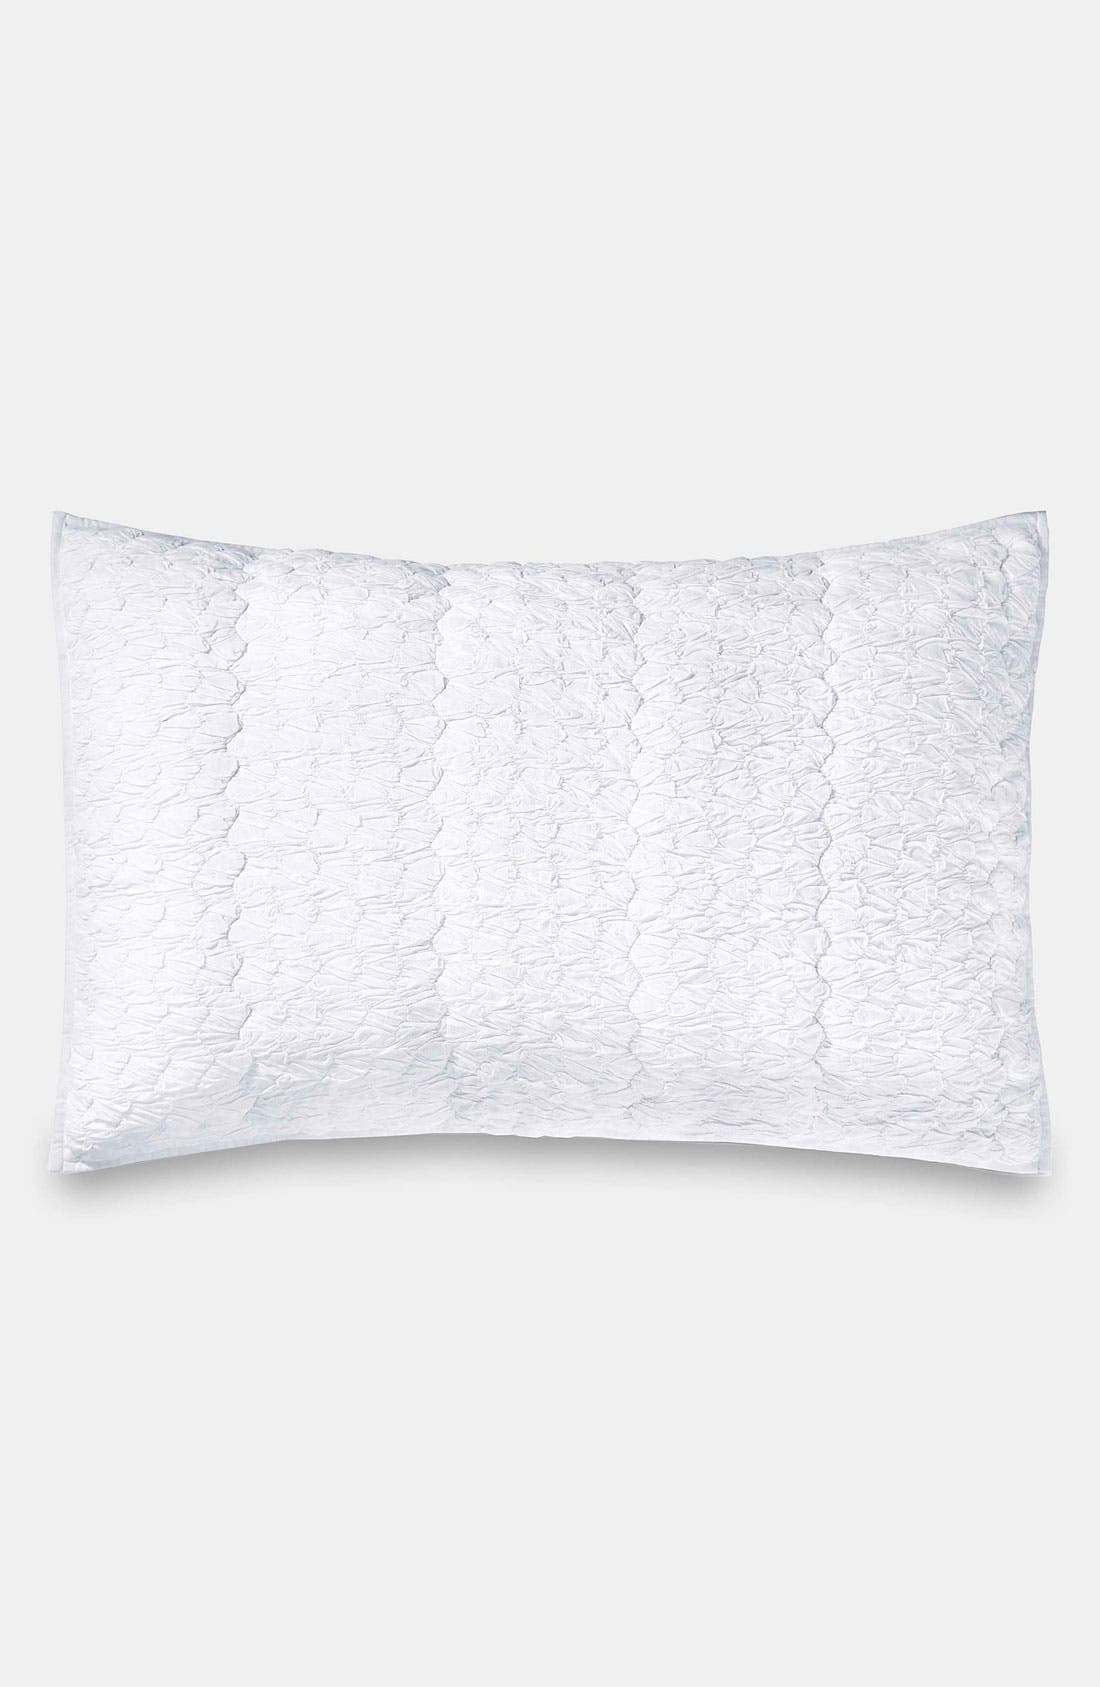 'Pure Enchantment' Pillow Sham,                         Main,                         color, Milk